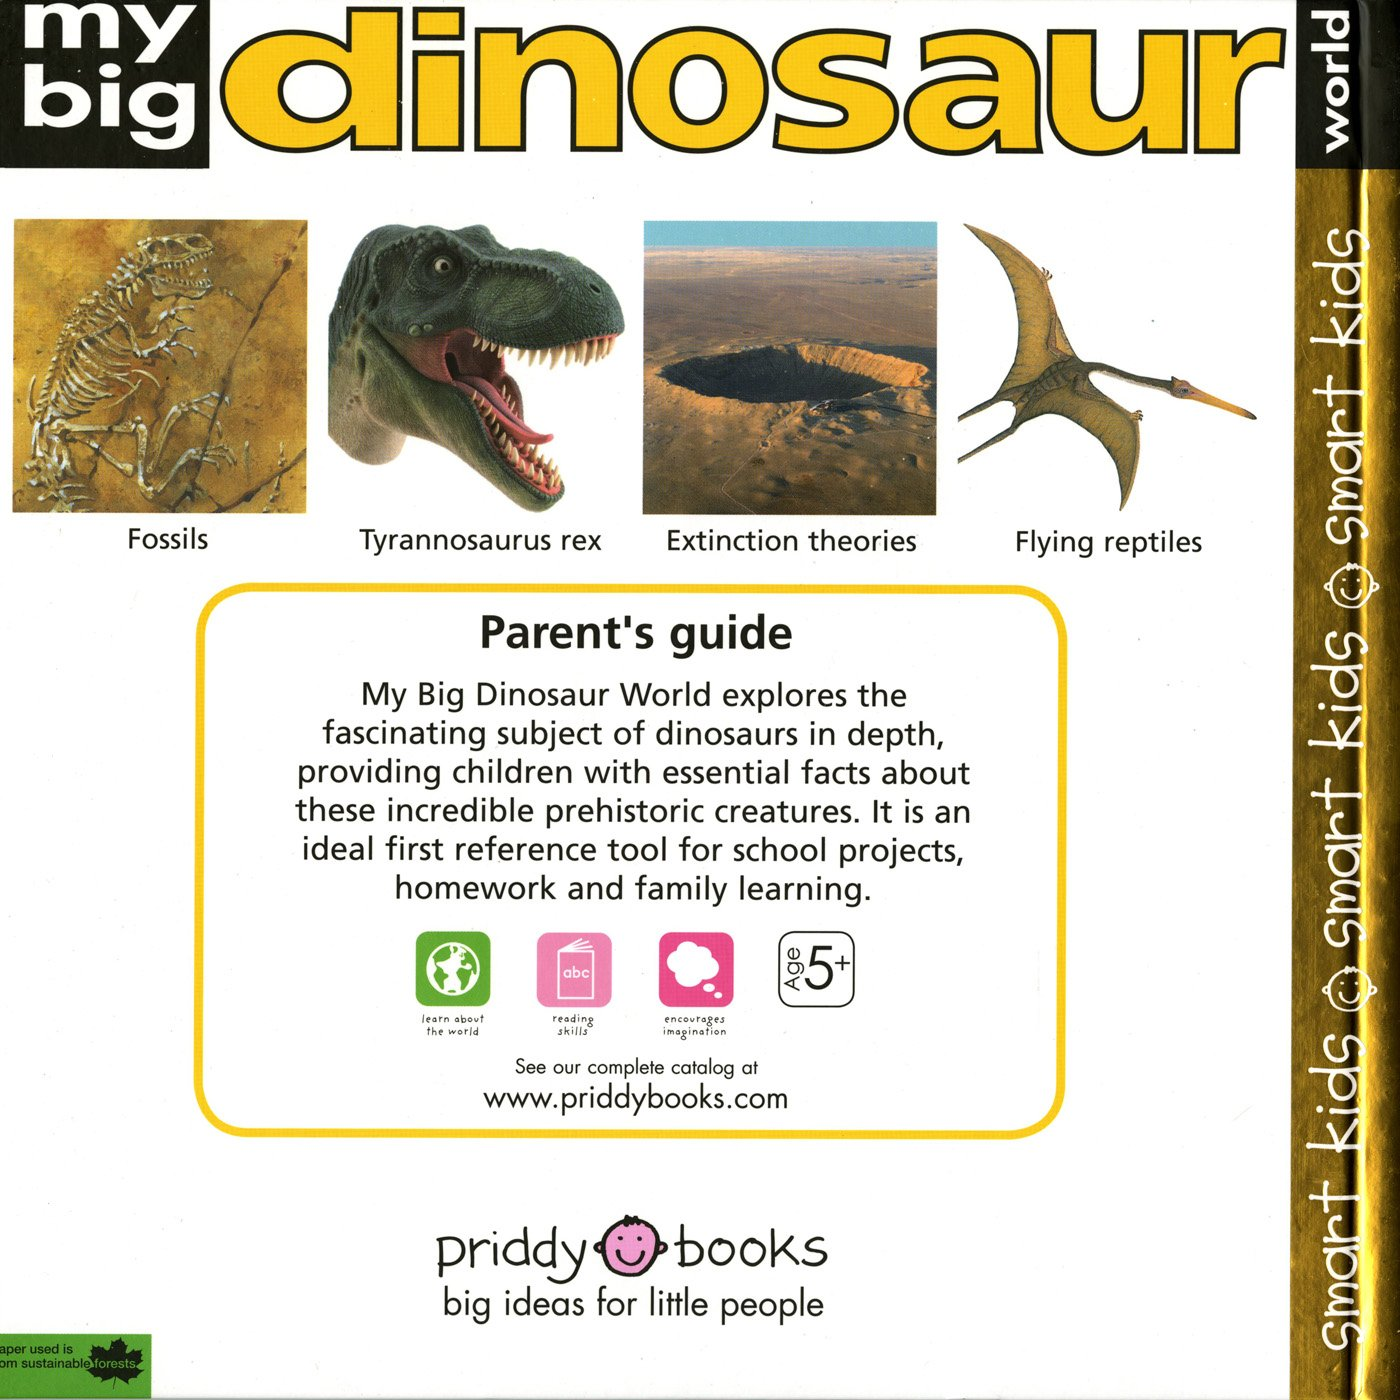 My Big Dinosaur World: Essential Facts from the Amazing World of Dinosaurs (My Big Reference) by Priddy Books (Image #1)